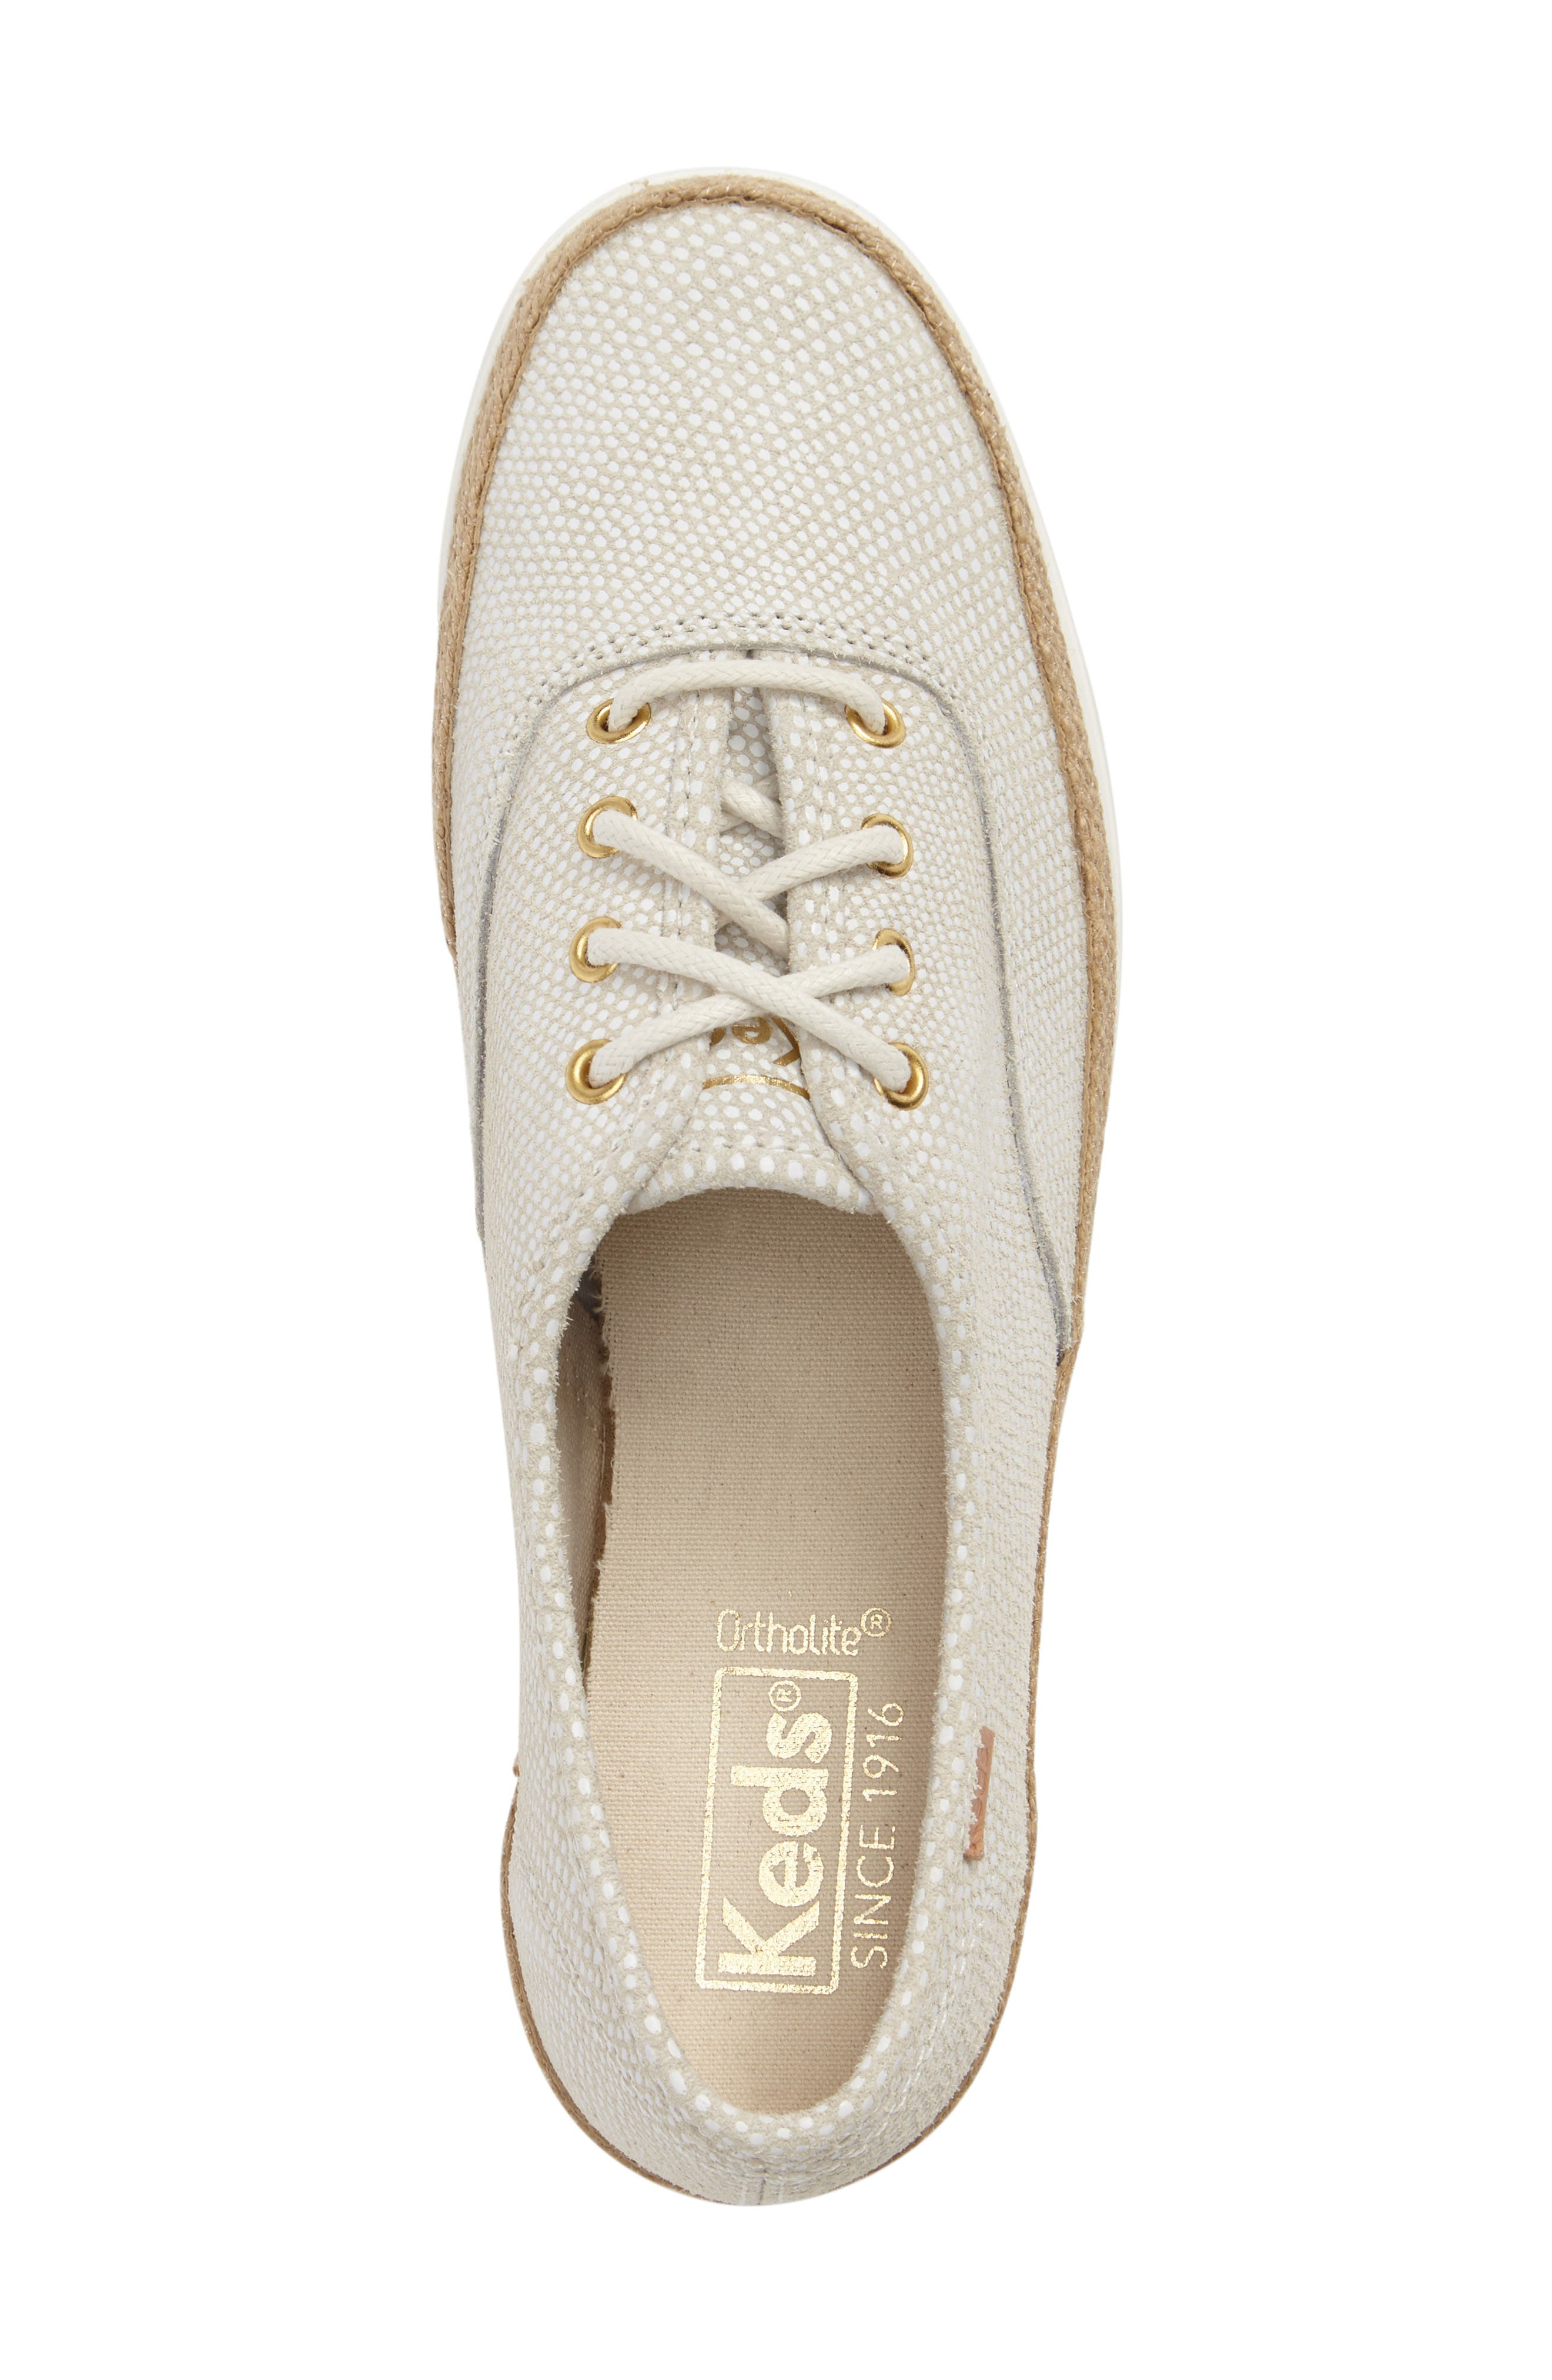 Triple Deck Platform Sneaker,                             Alternate thumbnail 5, color,                             Cream